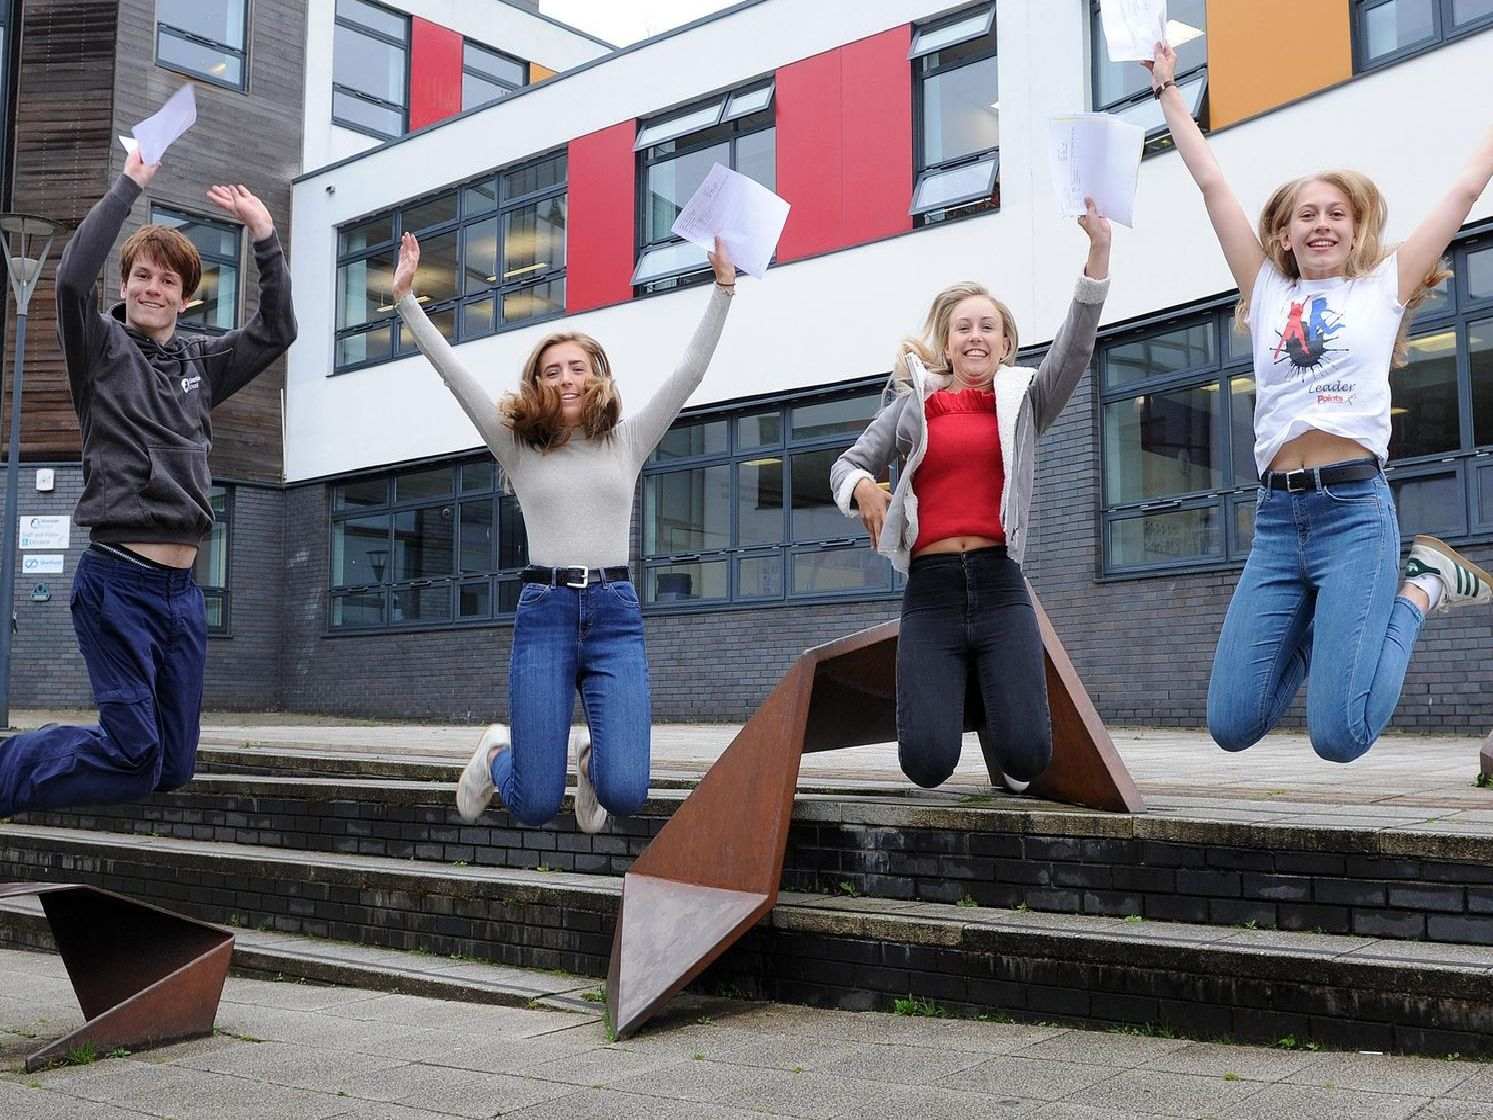 13 schools in Calderdale ranked according to GCSE results - 2019 figures